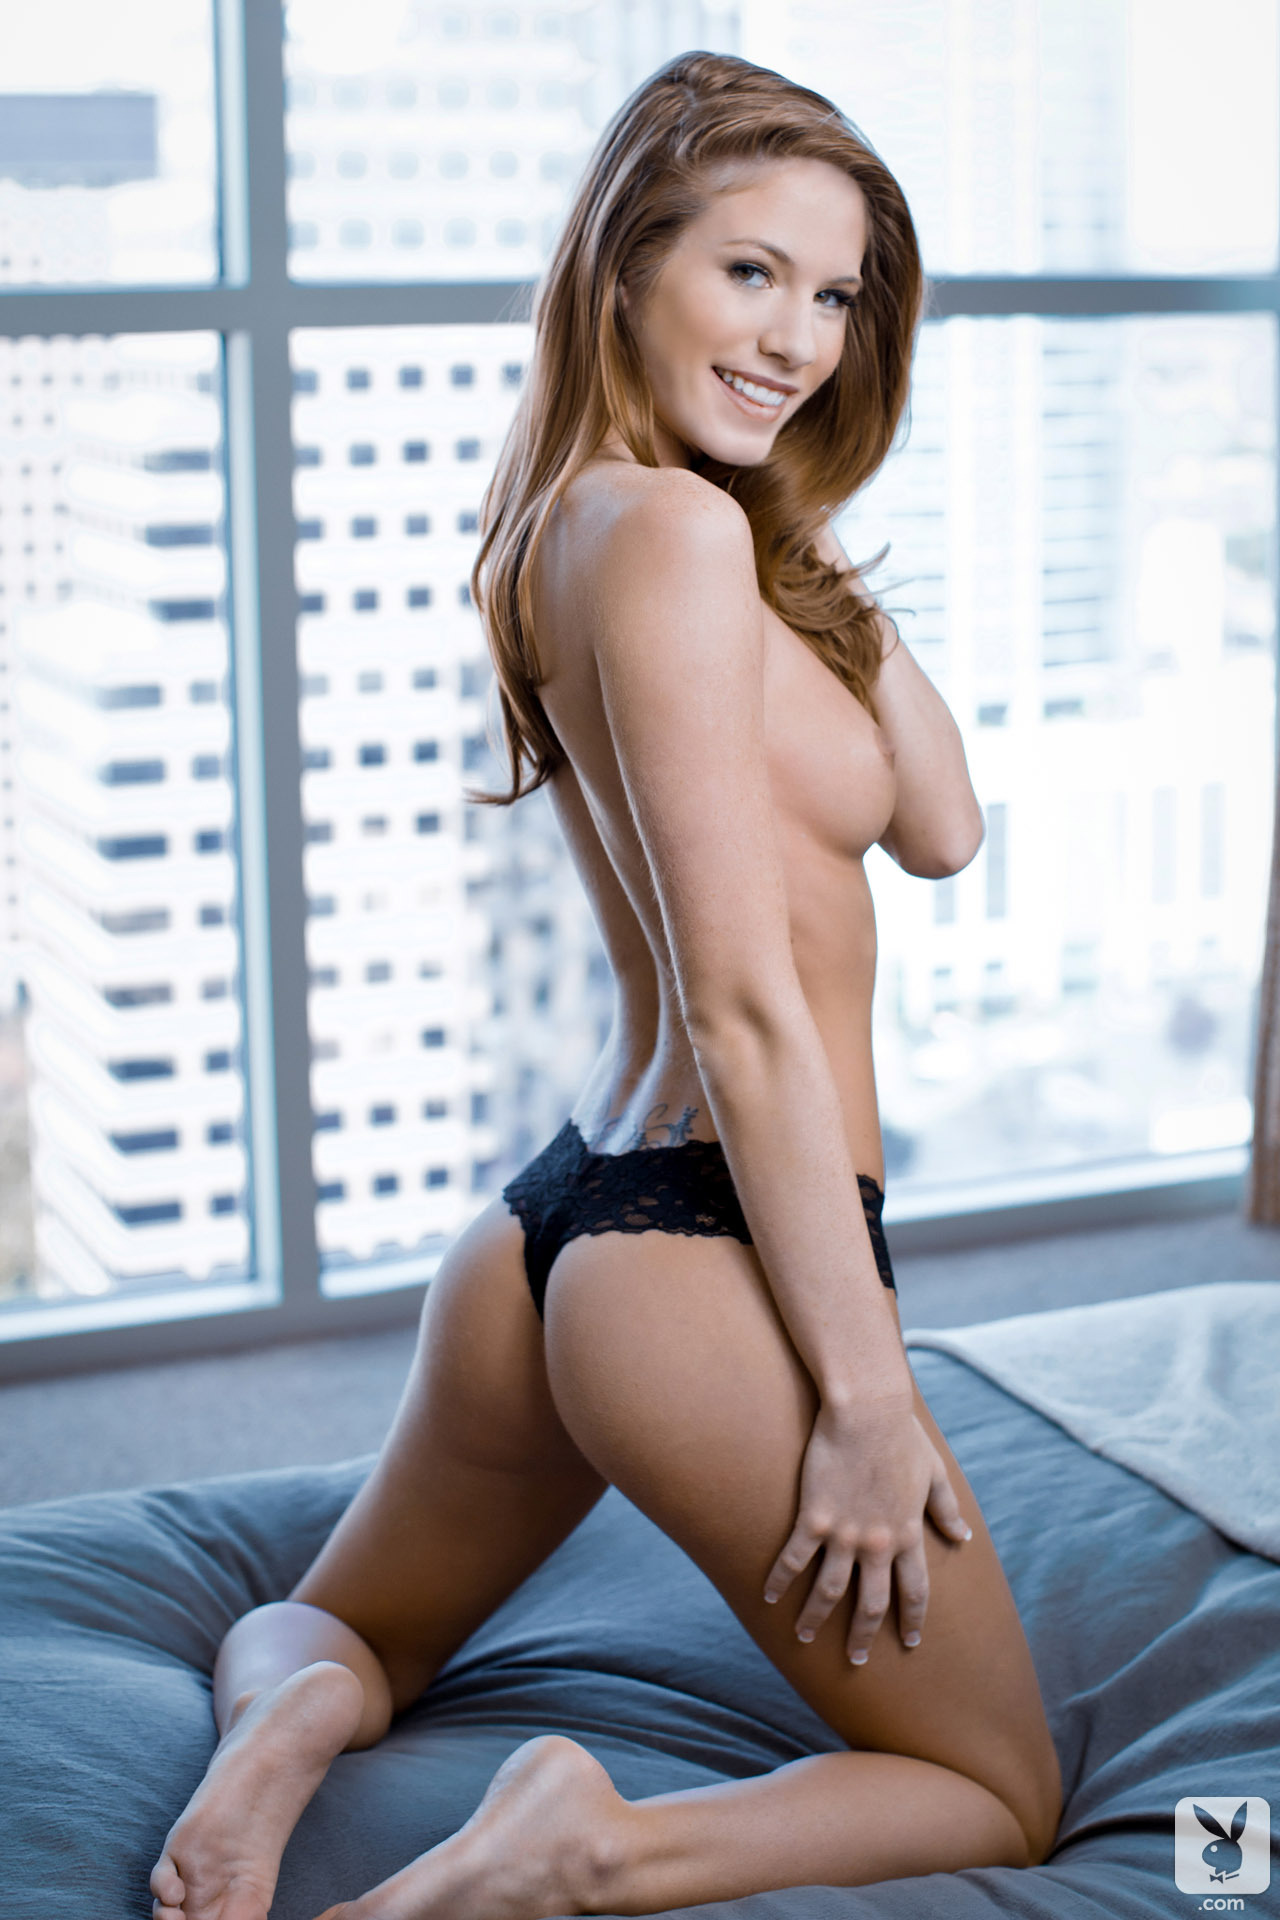 bree-morgan-nude-apartment-redhead-playboy-08